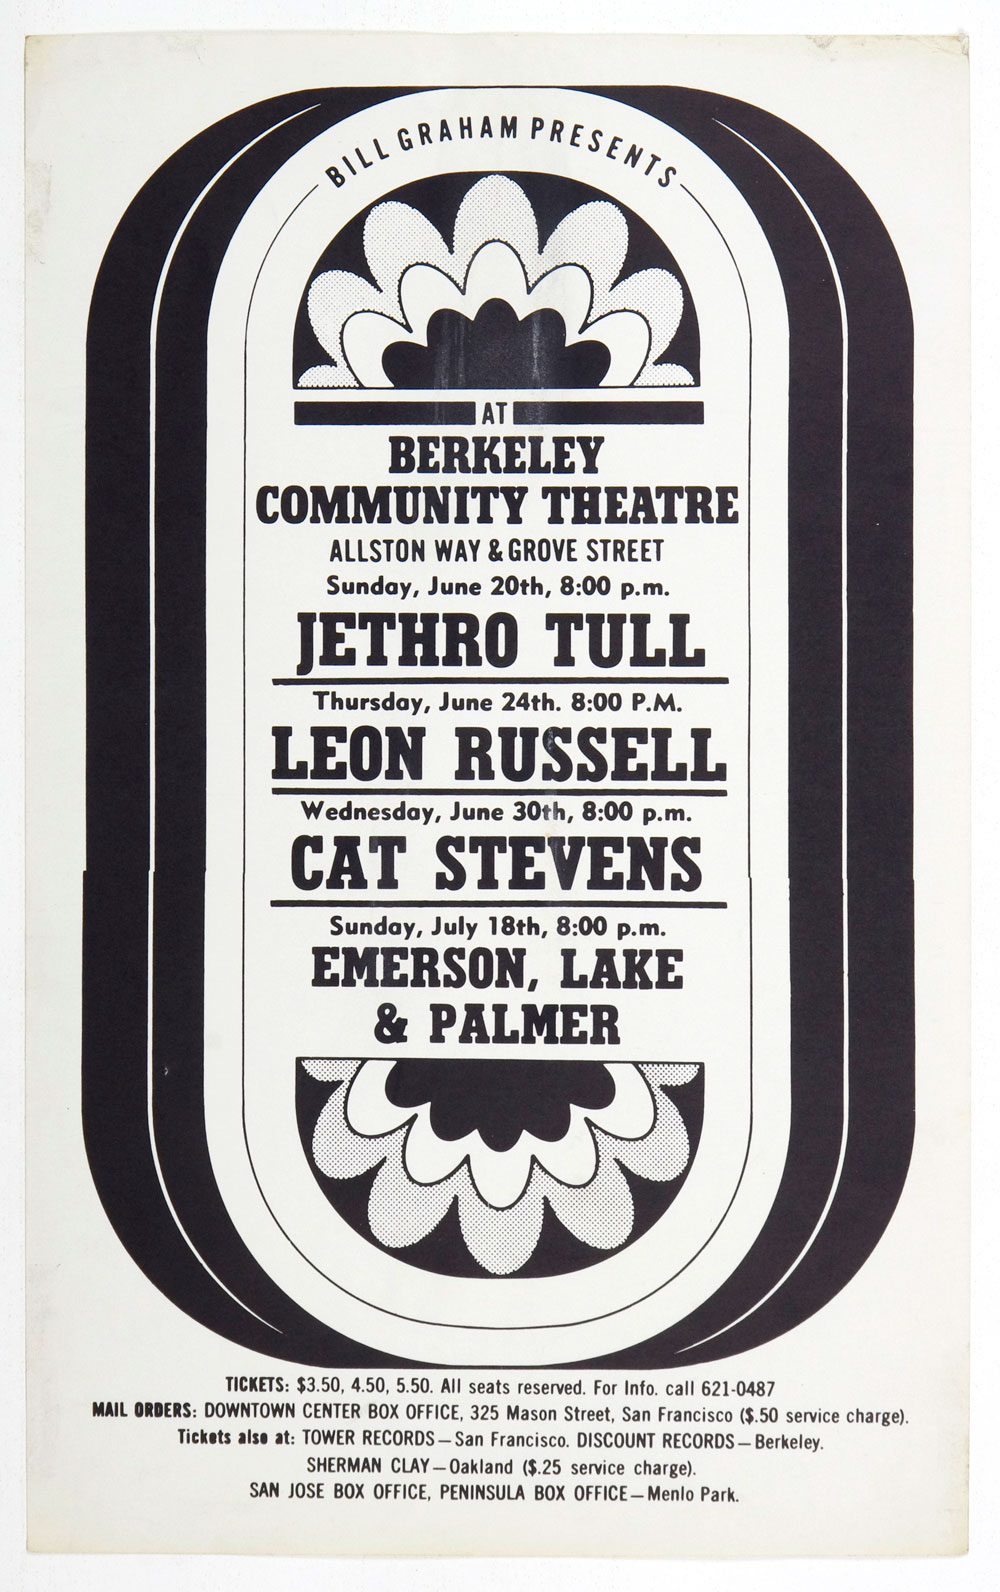 BIll Graham Presents Poster 1971 Jethro Tull Cat Stevense Berkeley Community Theatre